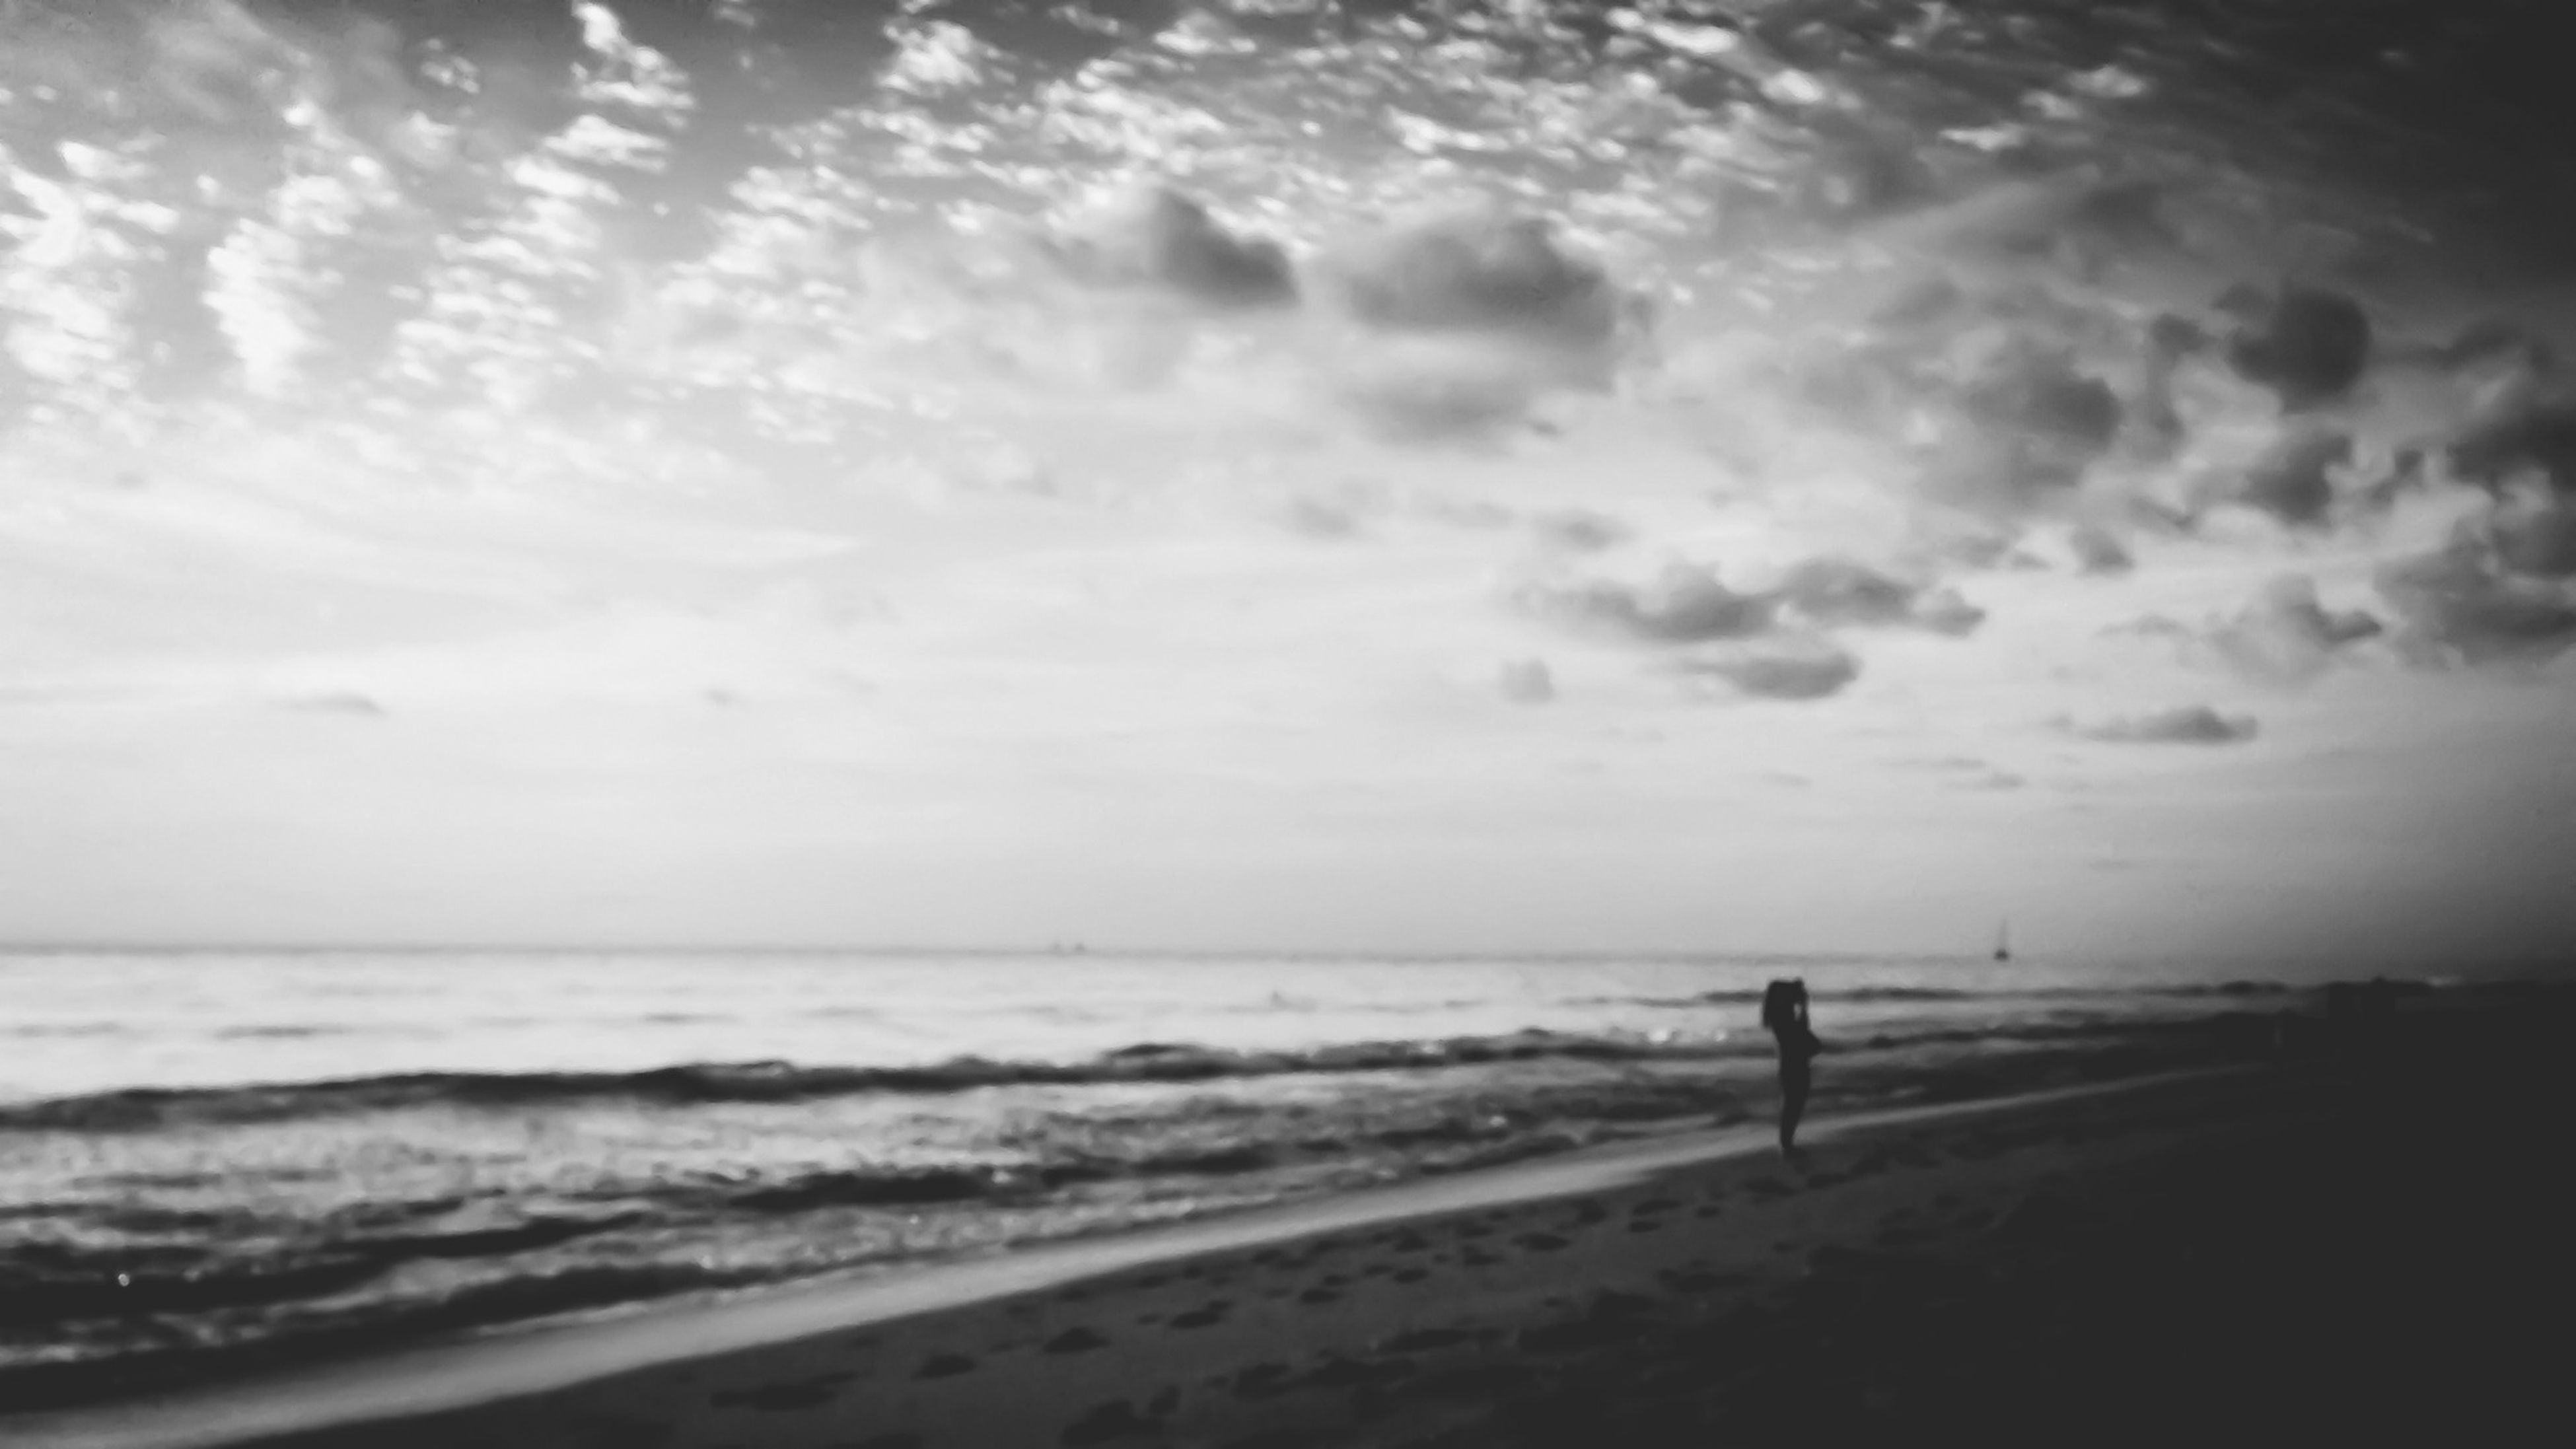 beach, sea, shore, water, sand, horizon over water, sky, wave, tranquility, scenics, tranquil scene, silhouette, cloud - sky, beauty in nature, leisure activity, nature, lifestyles, coastline